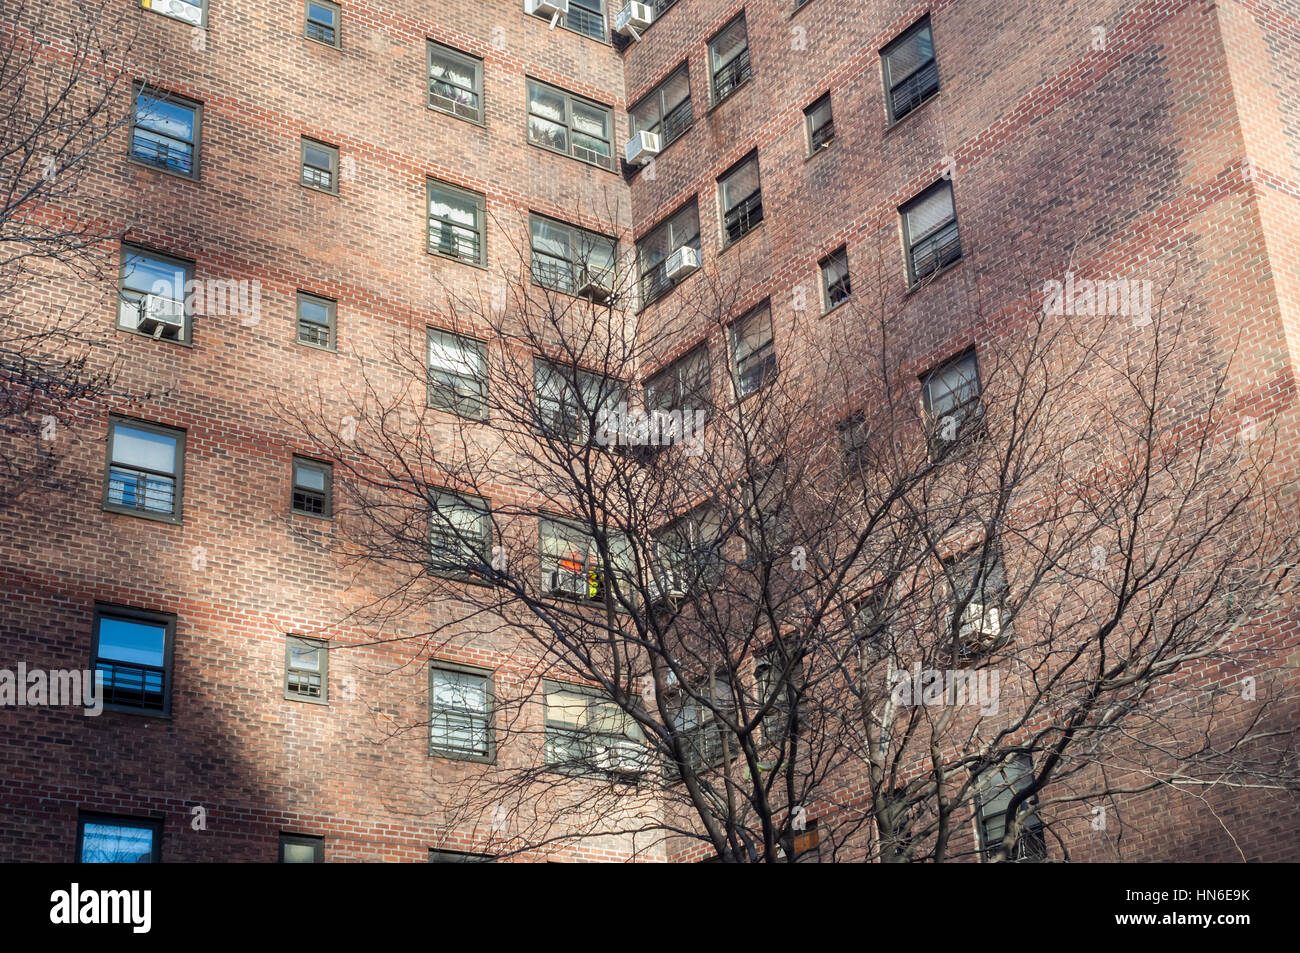 Stock Photo   The Massive NYCHA Elliot Houses Complex Of Apartments In  Chelsea In New York Is Seen On Saturday, February 4, 2017.